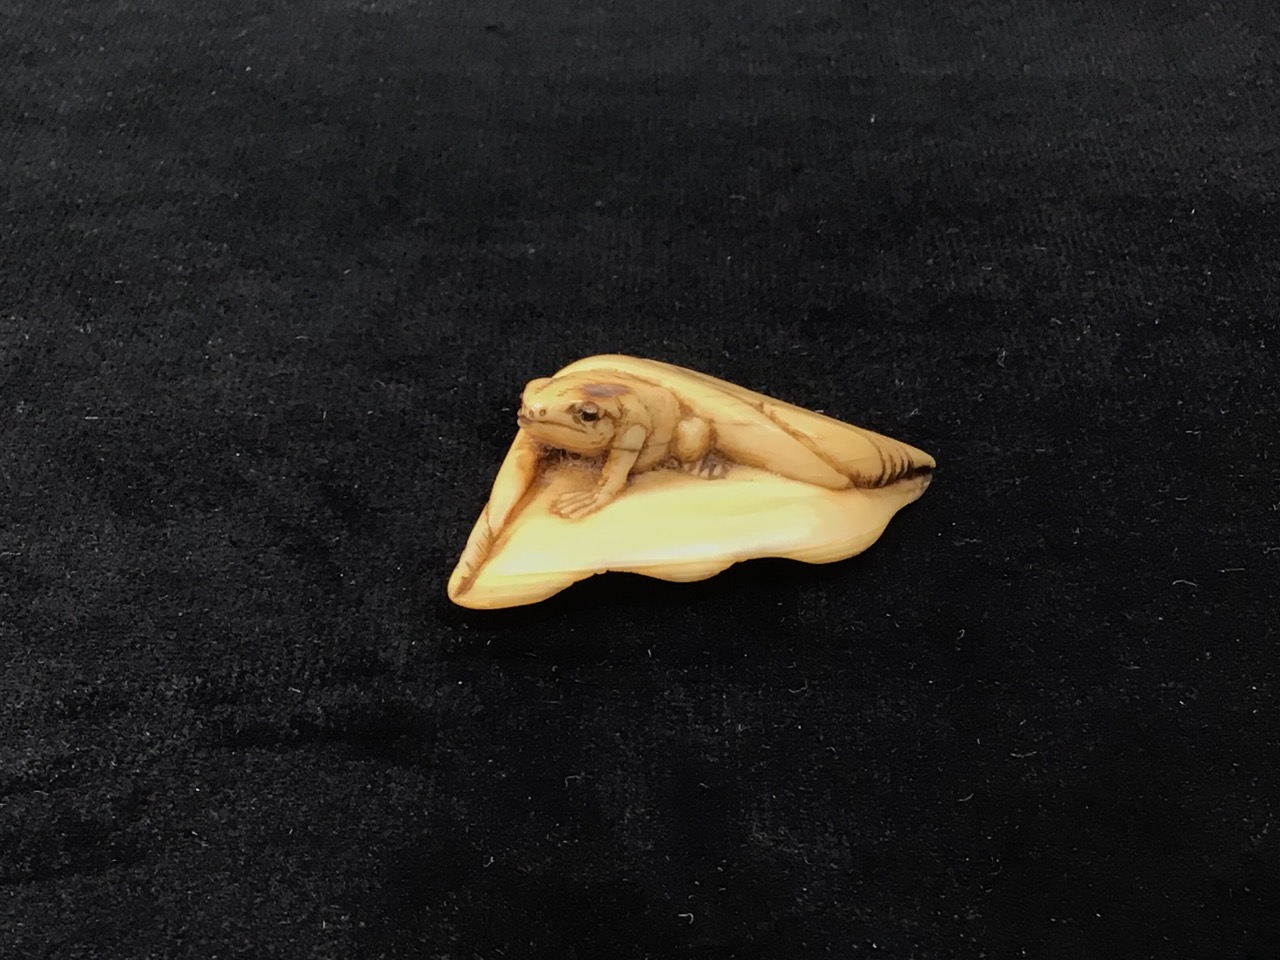 A netsuke of a frog emerging from leaf with two cord holes to rear W:5cm x D:3cm